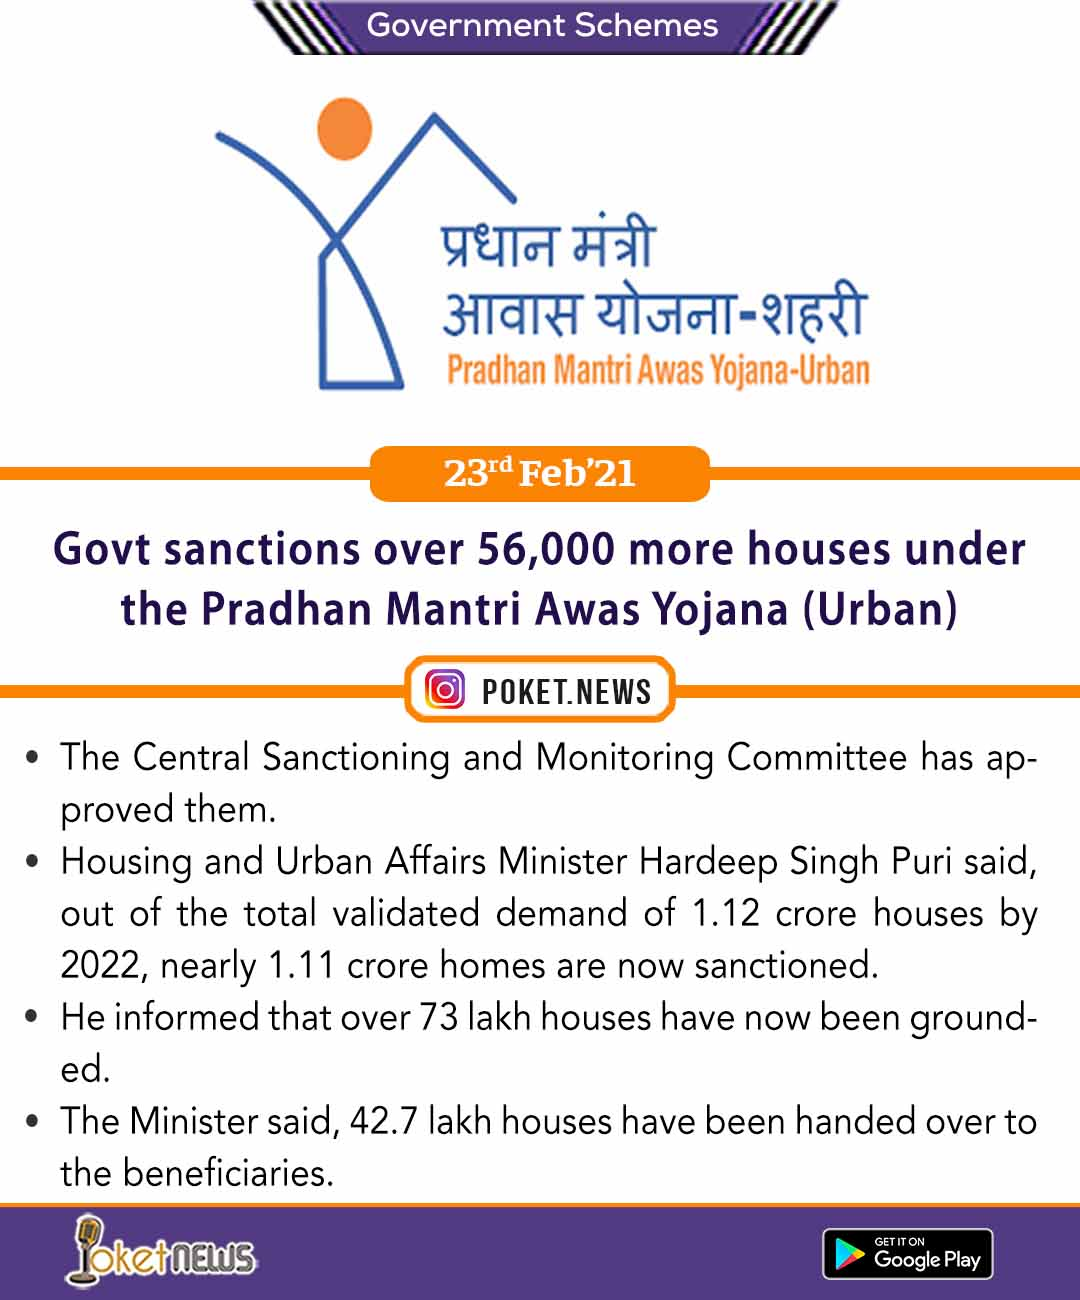 Govt sanctions over 56,000 more houses under the Pradhan Mantri Awas Yojana (Urban)